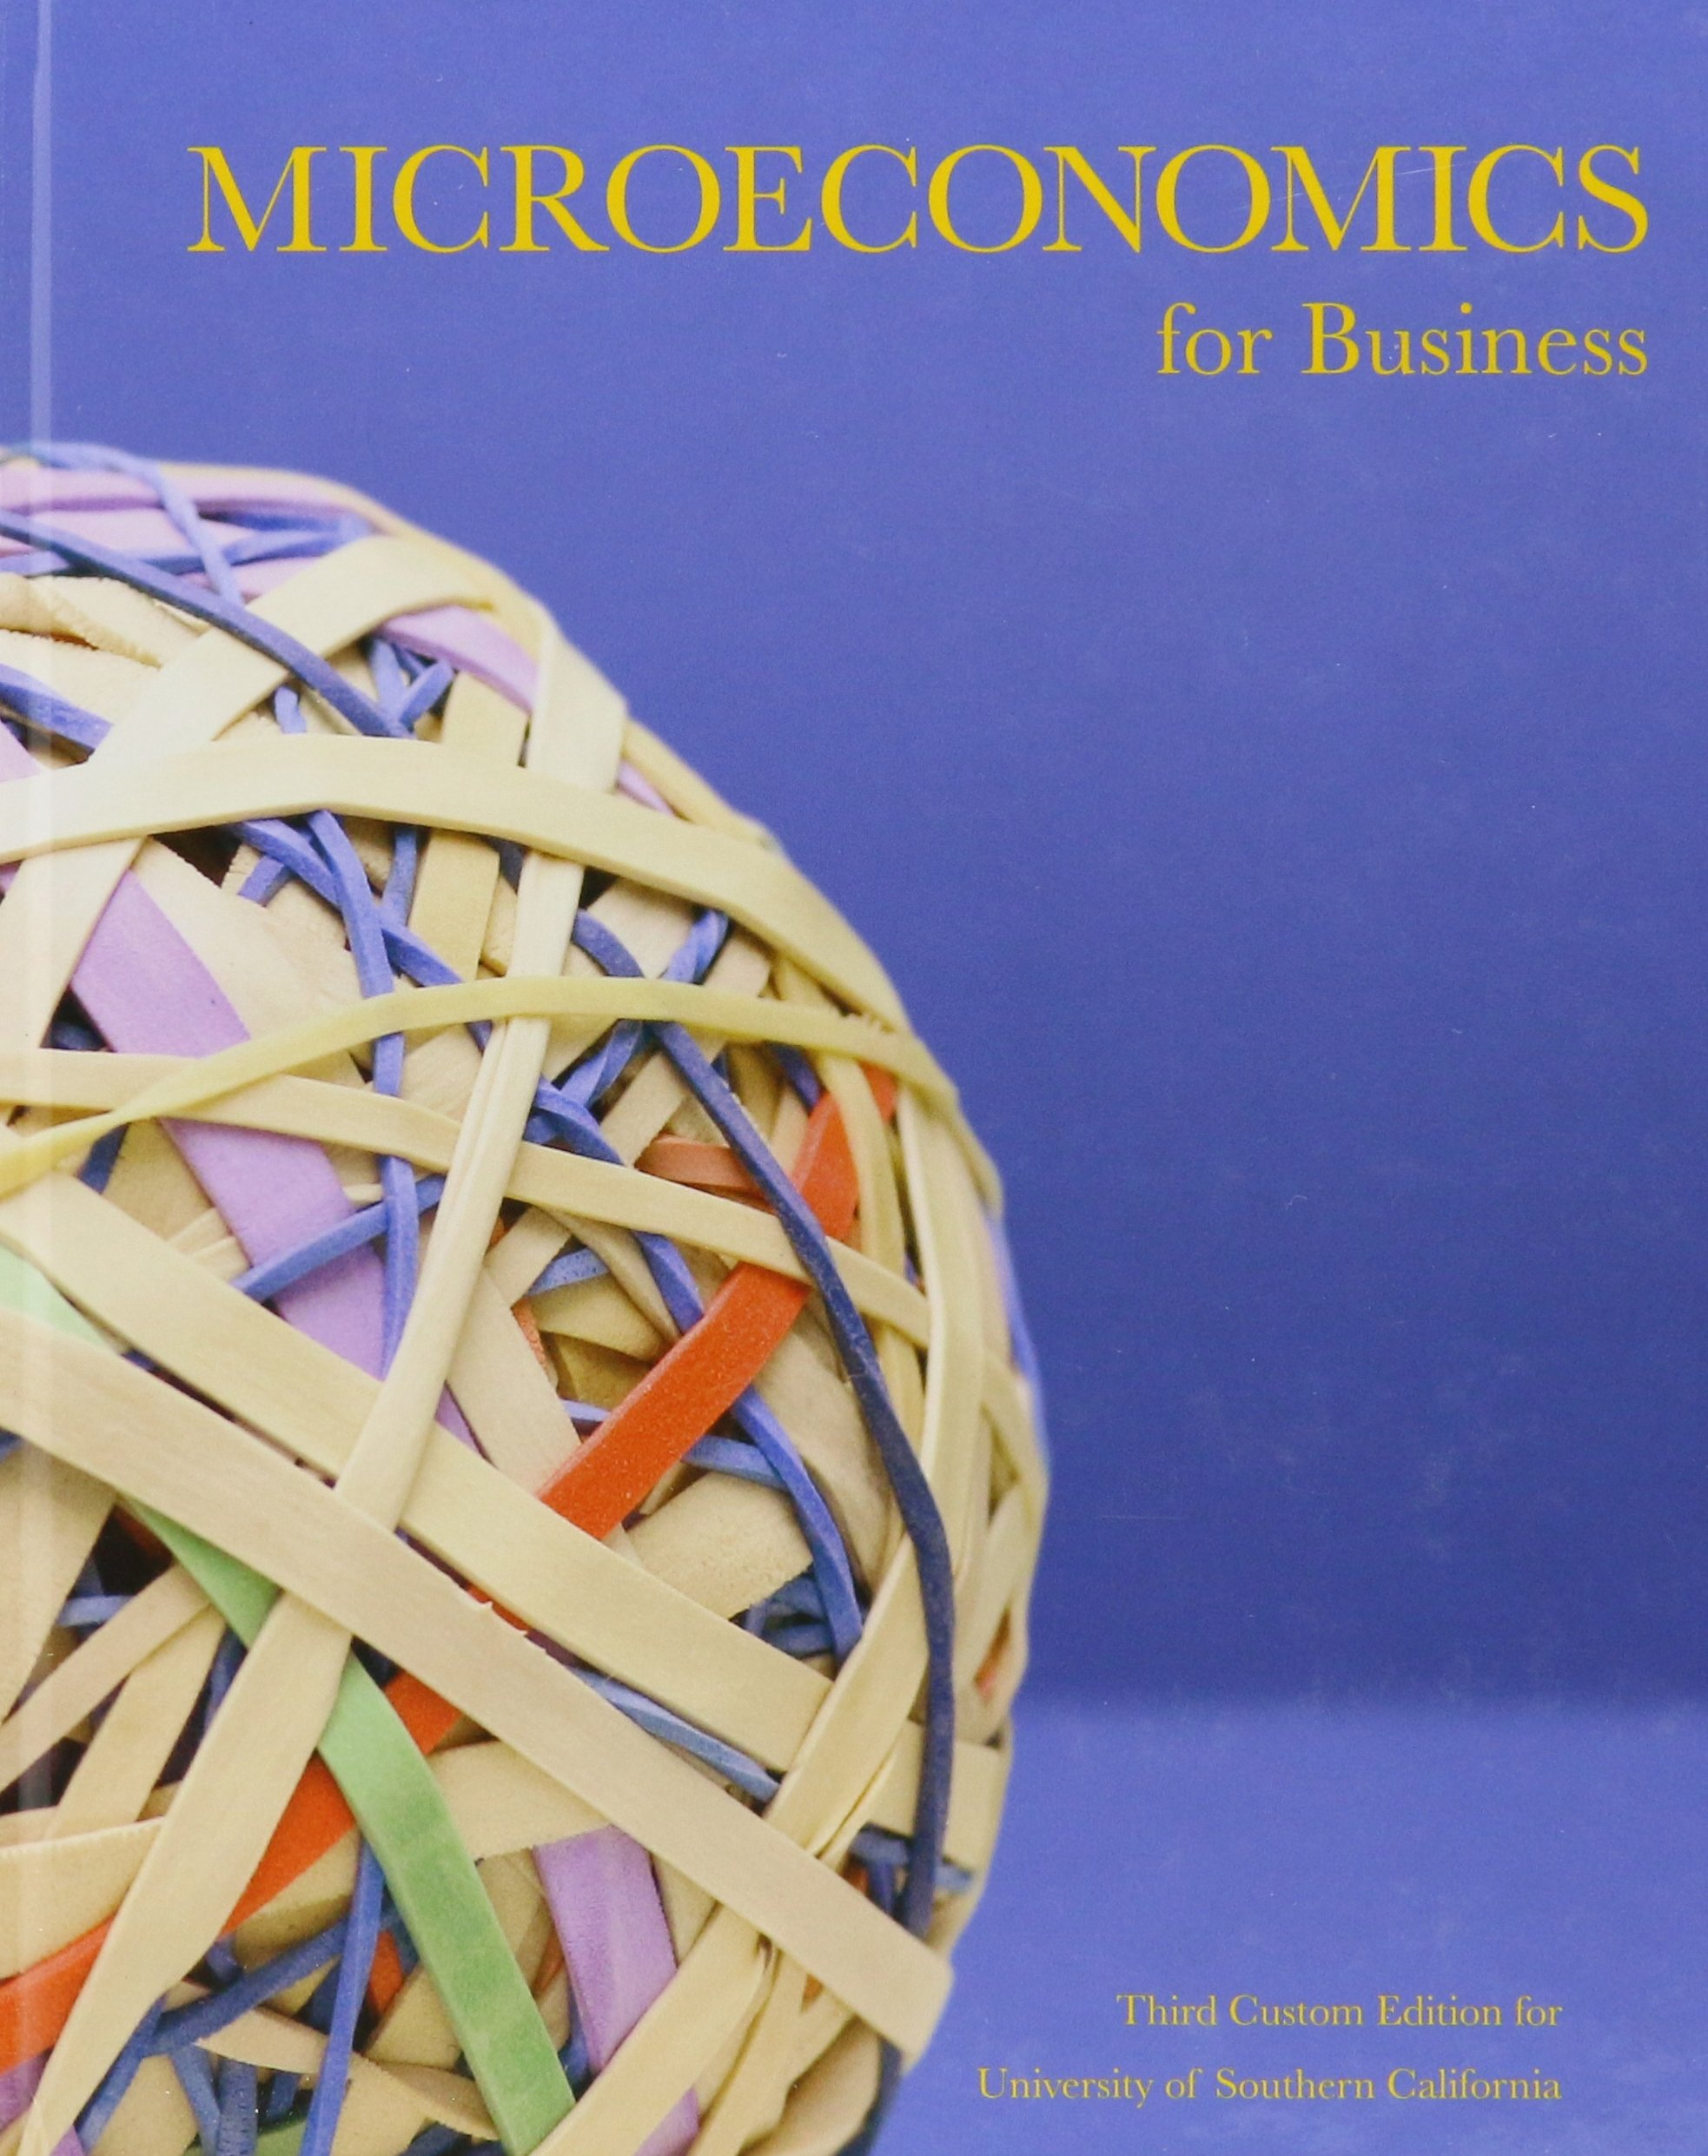 Microeconomics for business robert s pindyck daniel l rubinfeld microeconomics for business robert s pindyck daniel l rubinfeld r glenn hubbard anthony patrick obrien 9781269952774 amazon books fandeluxe Choice Image